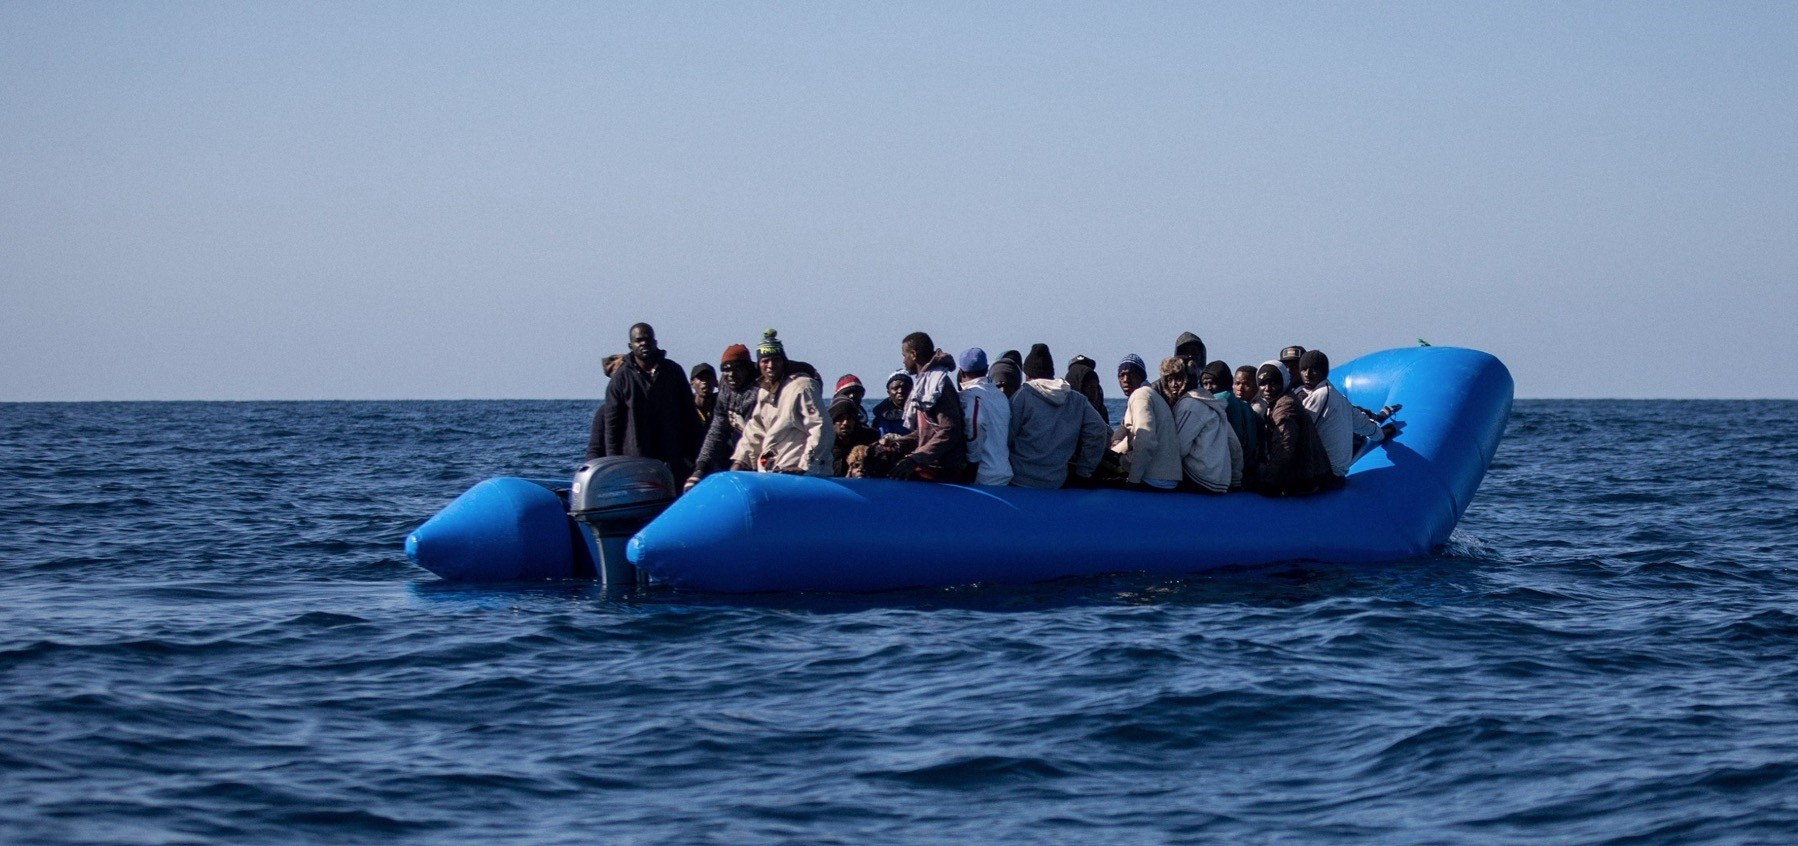 An inflatable boat with 47 migrants on board is pictured off Libyau2019s coasts, Jan. 19, 2019.